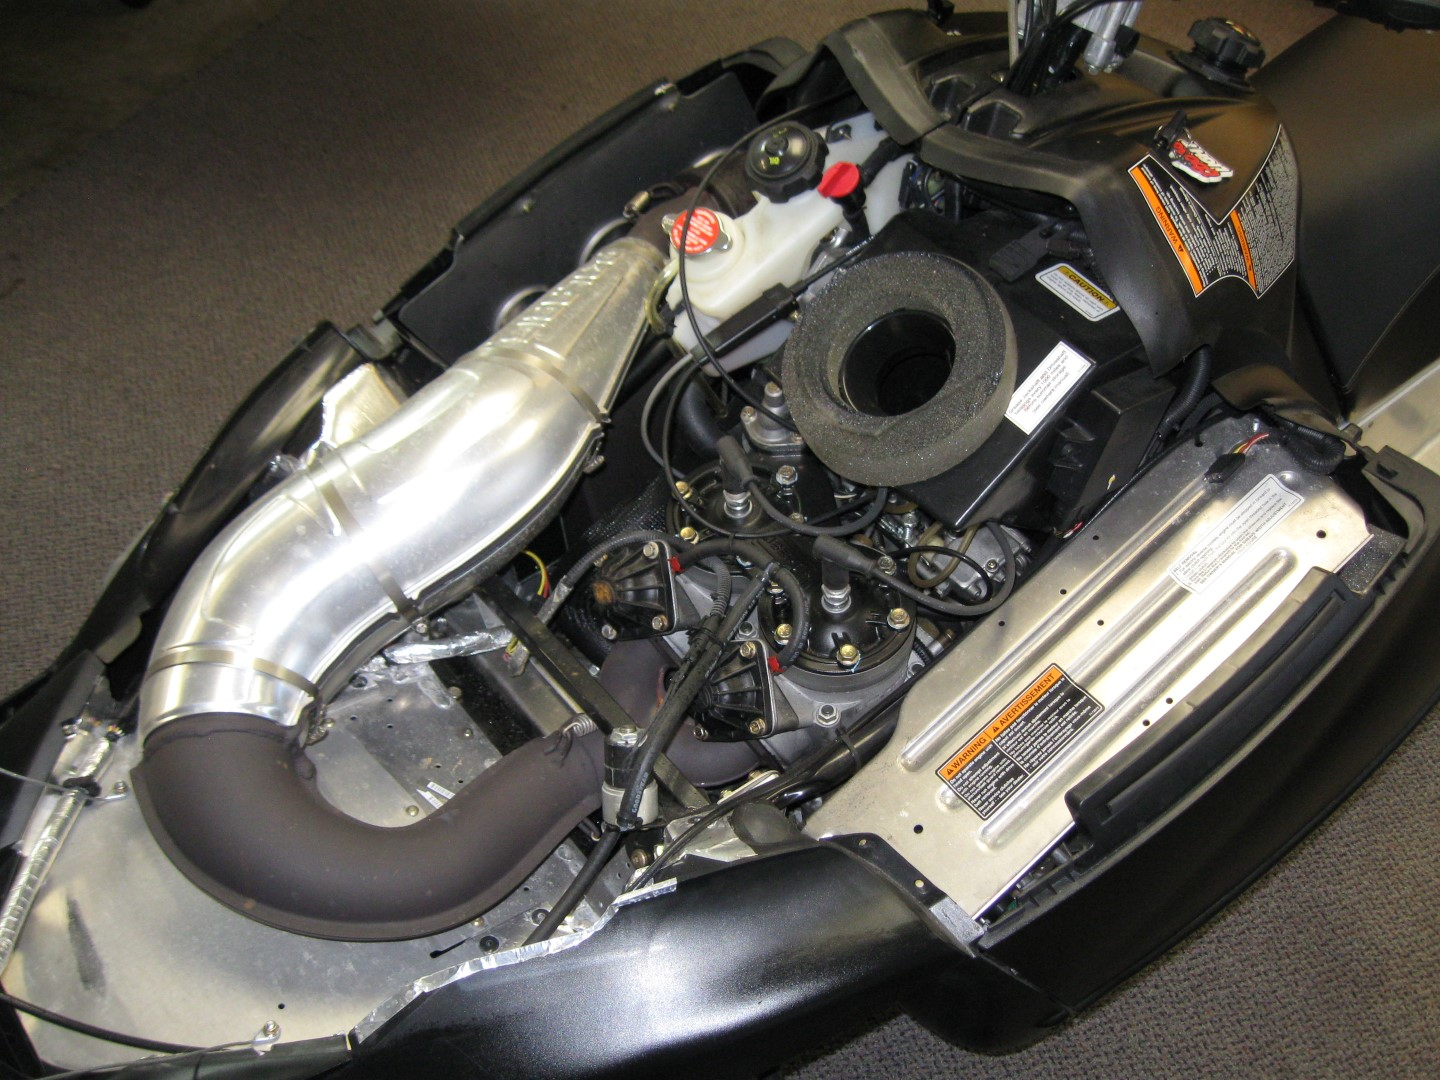 2011 Ski-Doo Renegade 800 XP snowmobile for sale Maple grove MN Seaberg motorsports engine compartment view